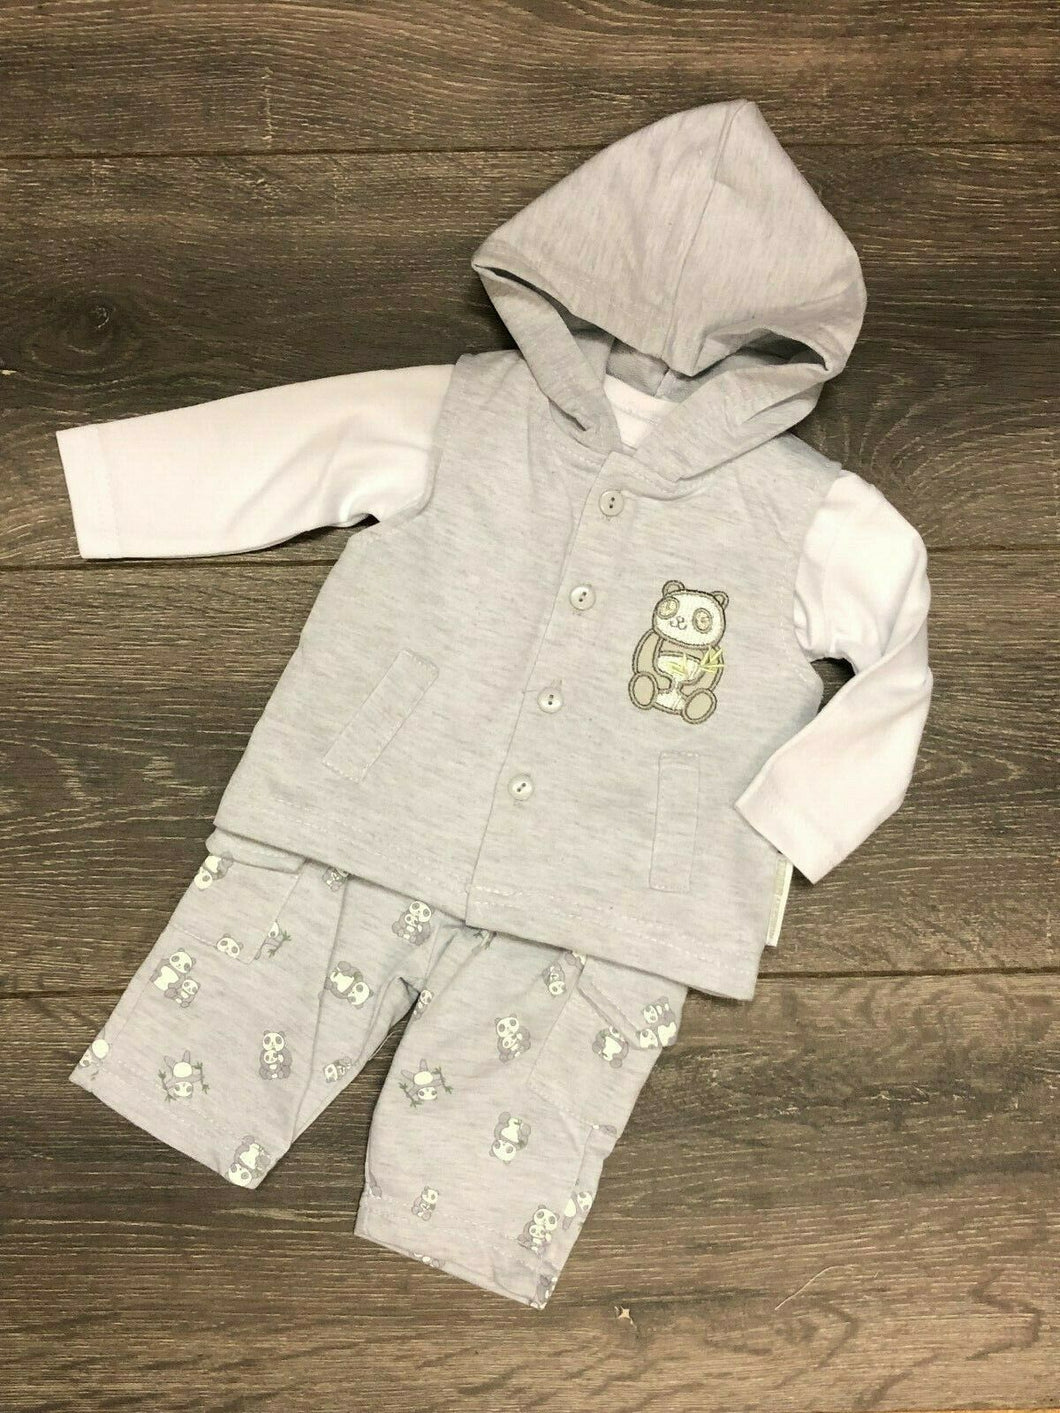 Baby Boy's 3 Piece Outfit in Grey & White with Hood